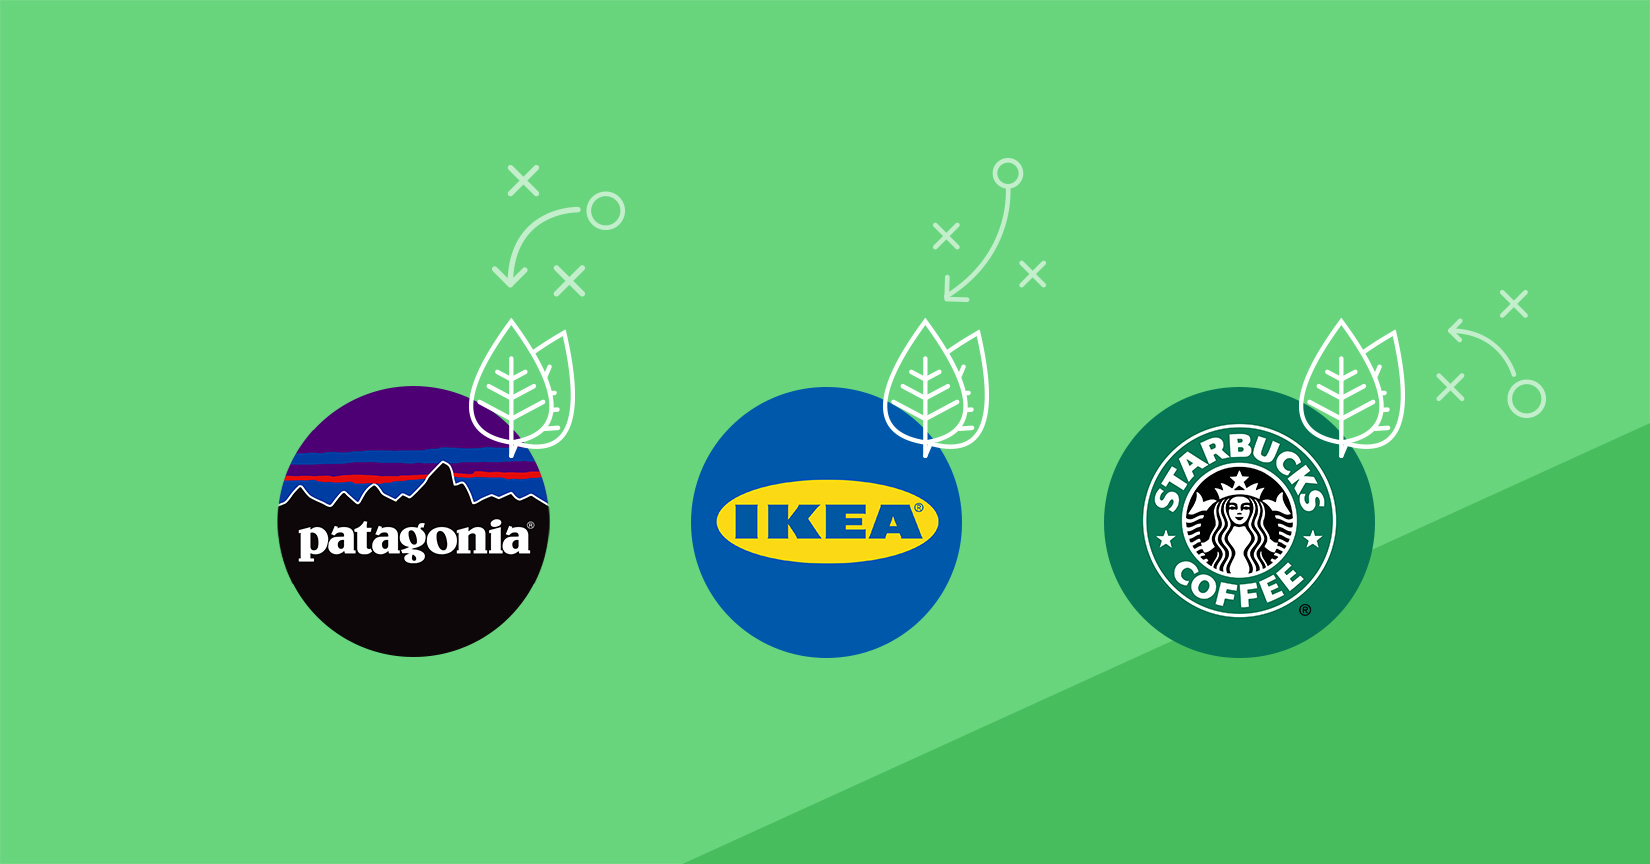 customer experience green products brand